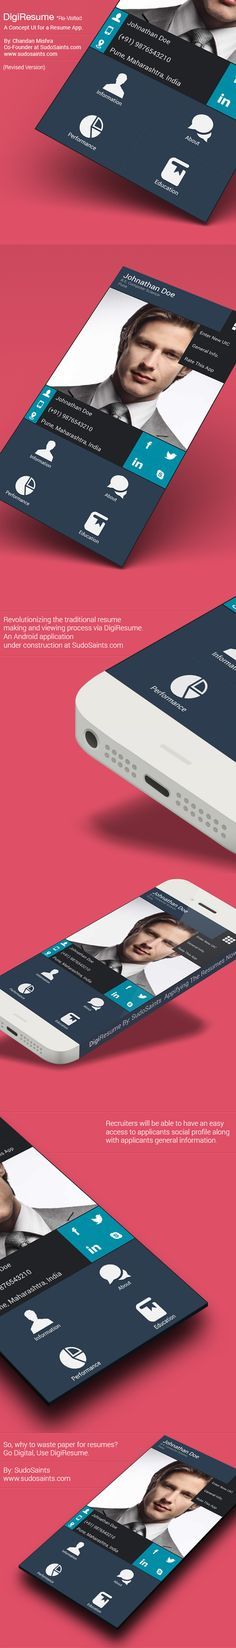 DigiResume - Revised Concept by Chandan Mishra, via Behance